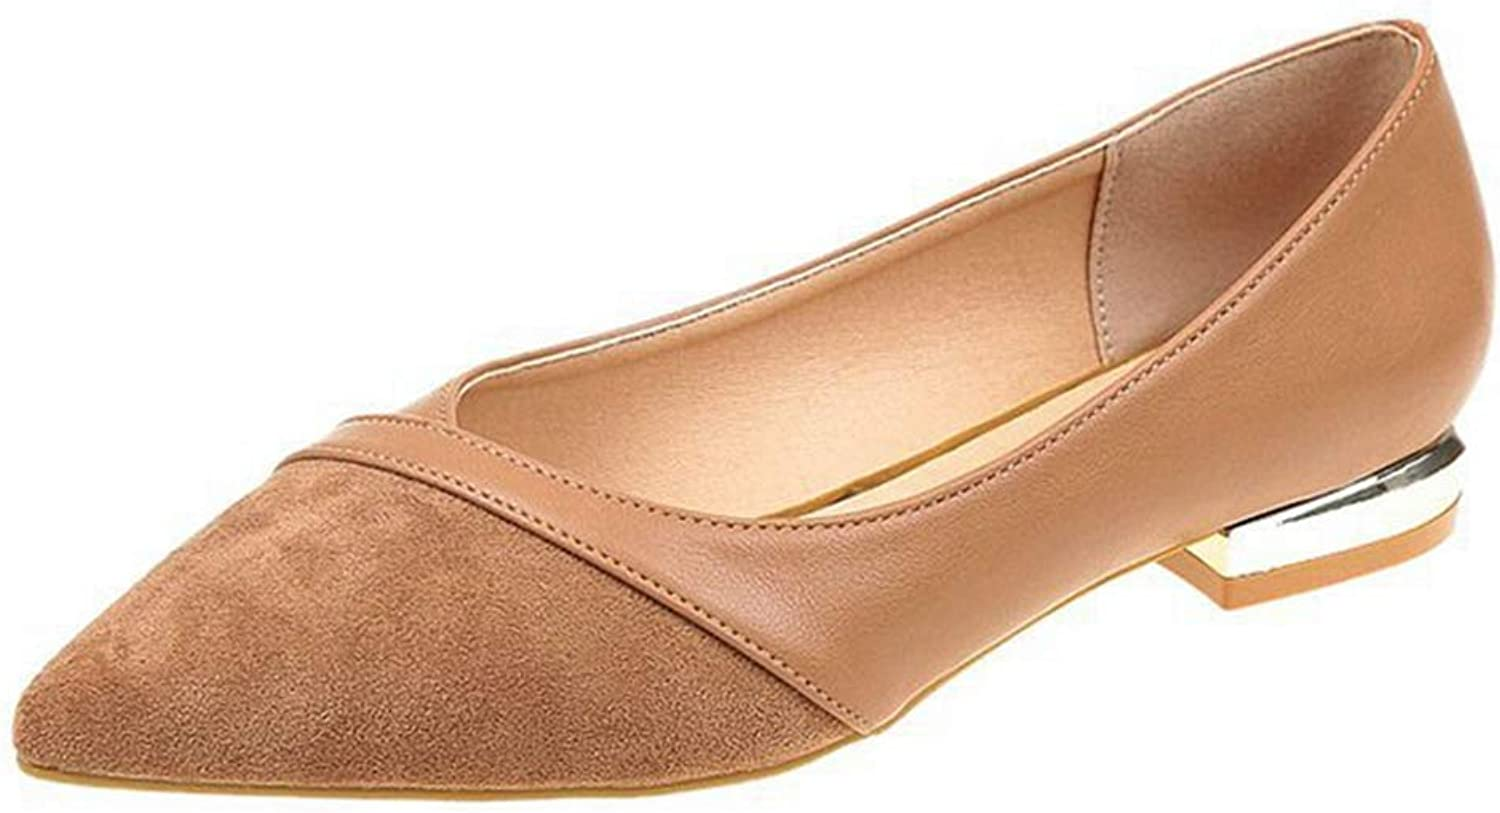 CYBLING Women's Flat shoes Fashion Pointed Toe Casual Square Low Heel Slip-On Pumps